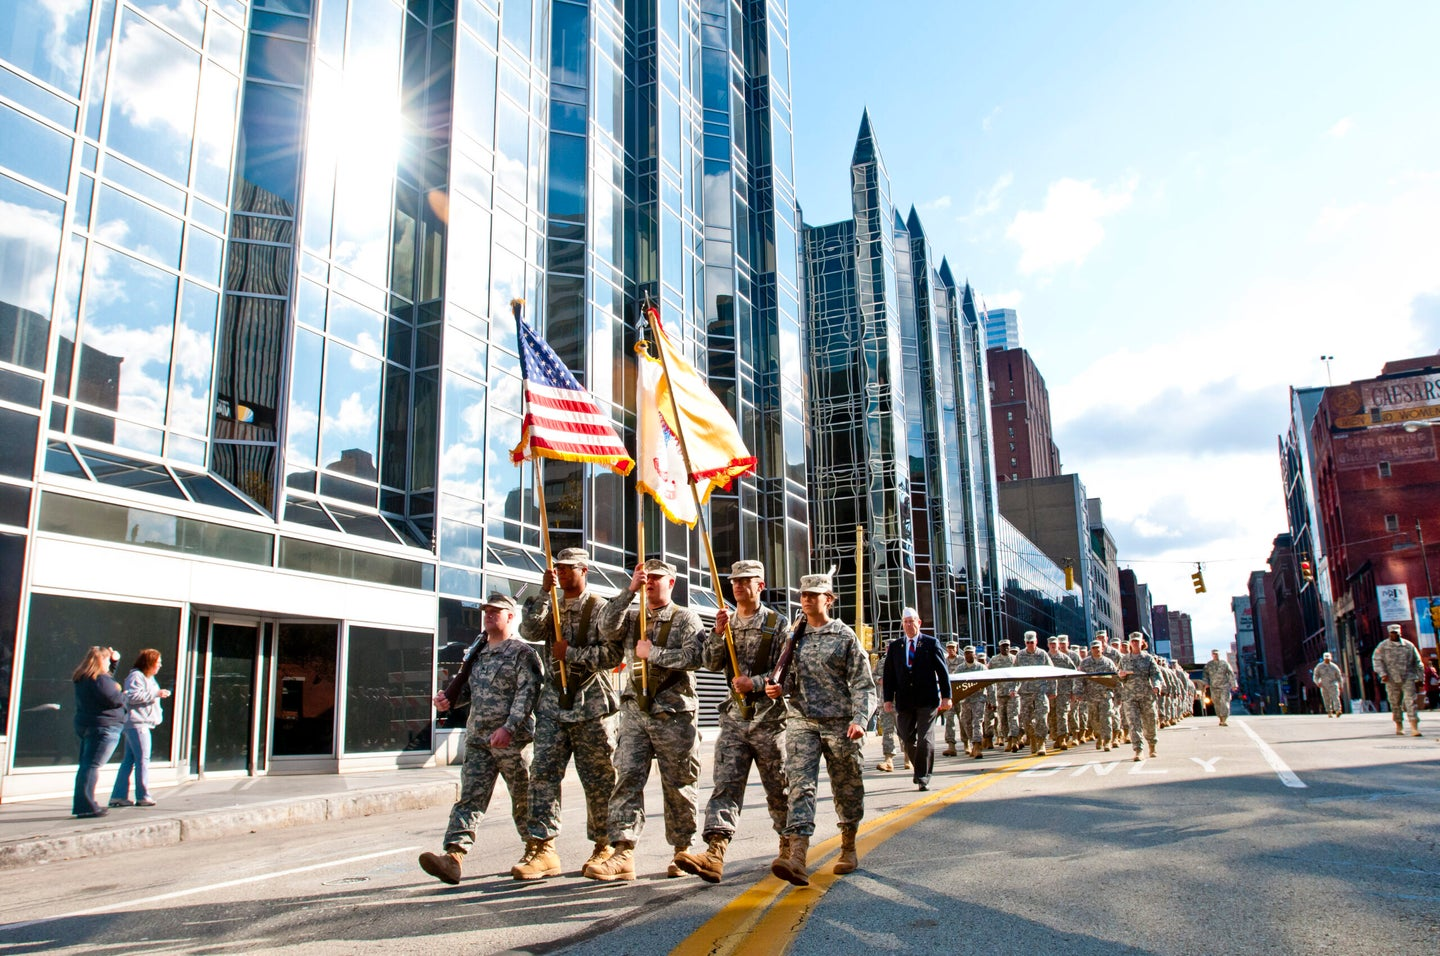 America is bitterly divided. Here's how our nation's veterans can bring us together